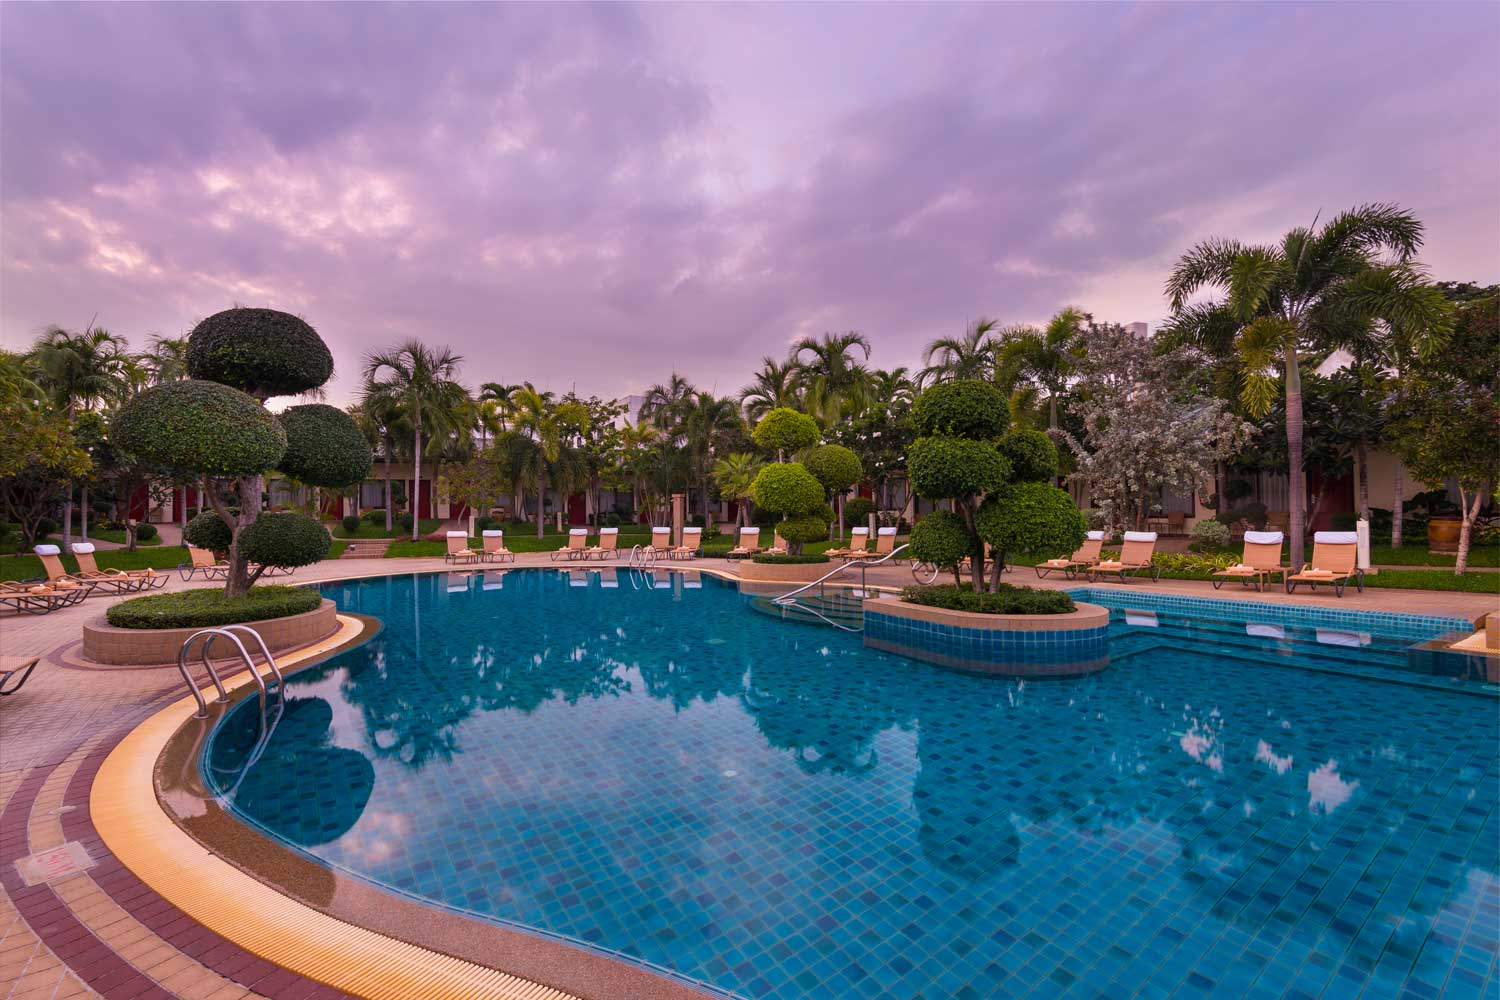 Lagoon Pool and Garden of Thai Garden Resort Pattaya Thailnd